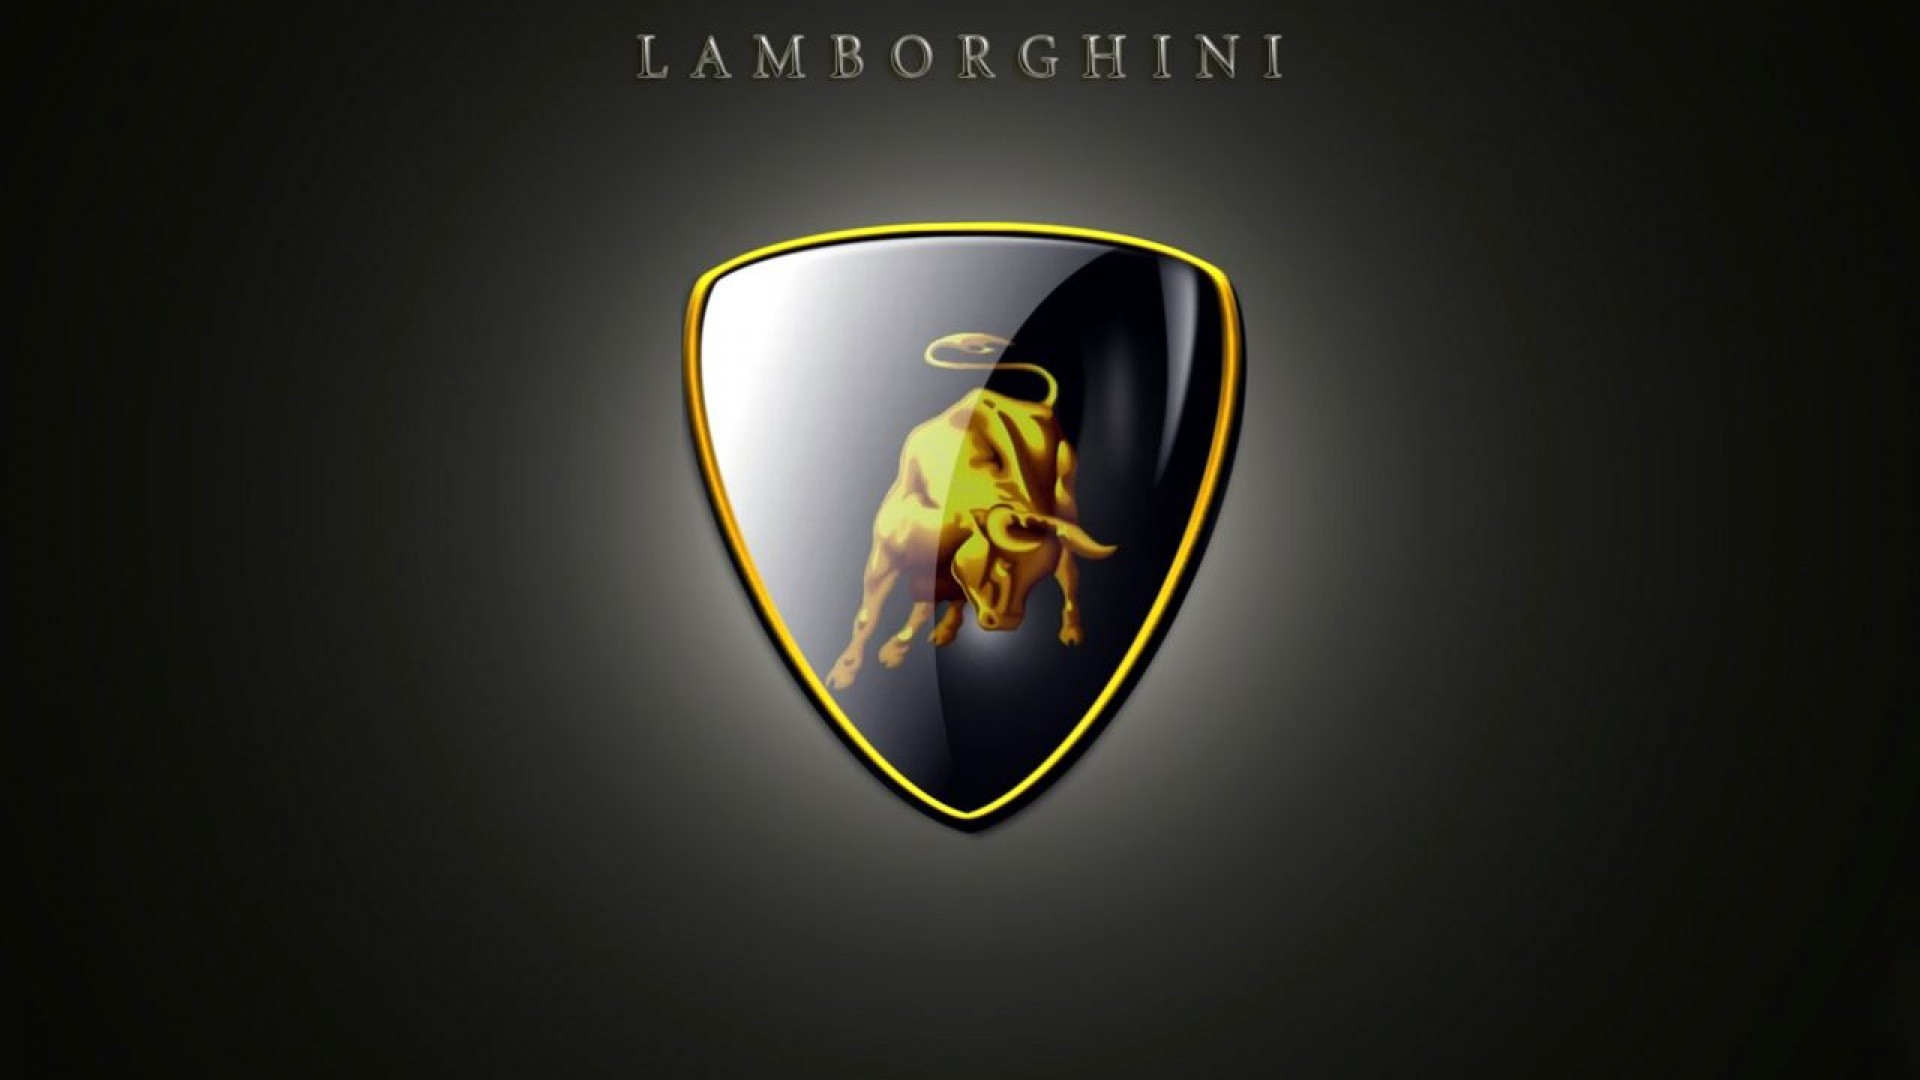 Lamborghini Logo 3D And Hd Wallpaper For Desktop Mobiles IPhone